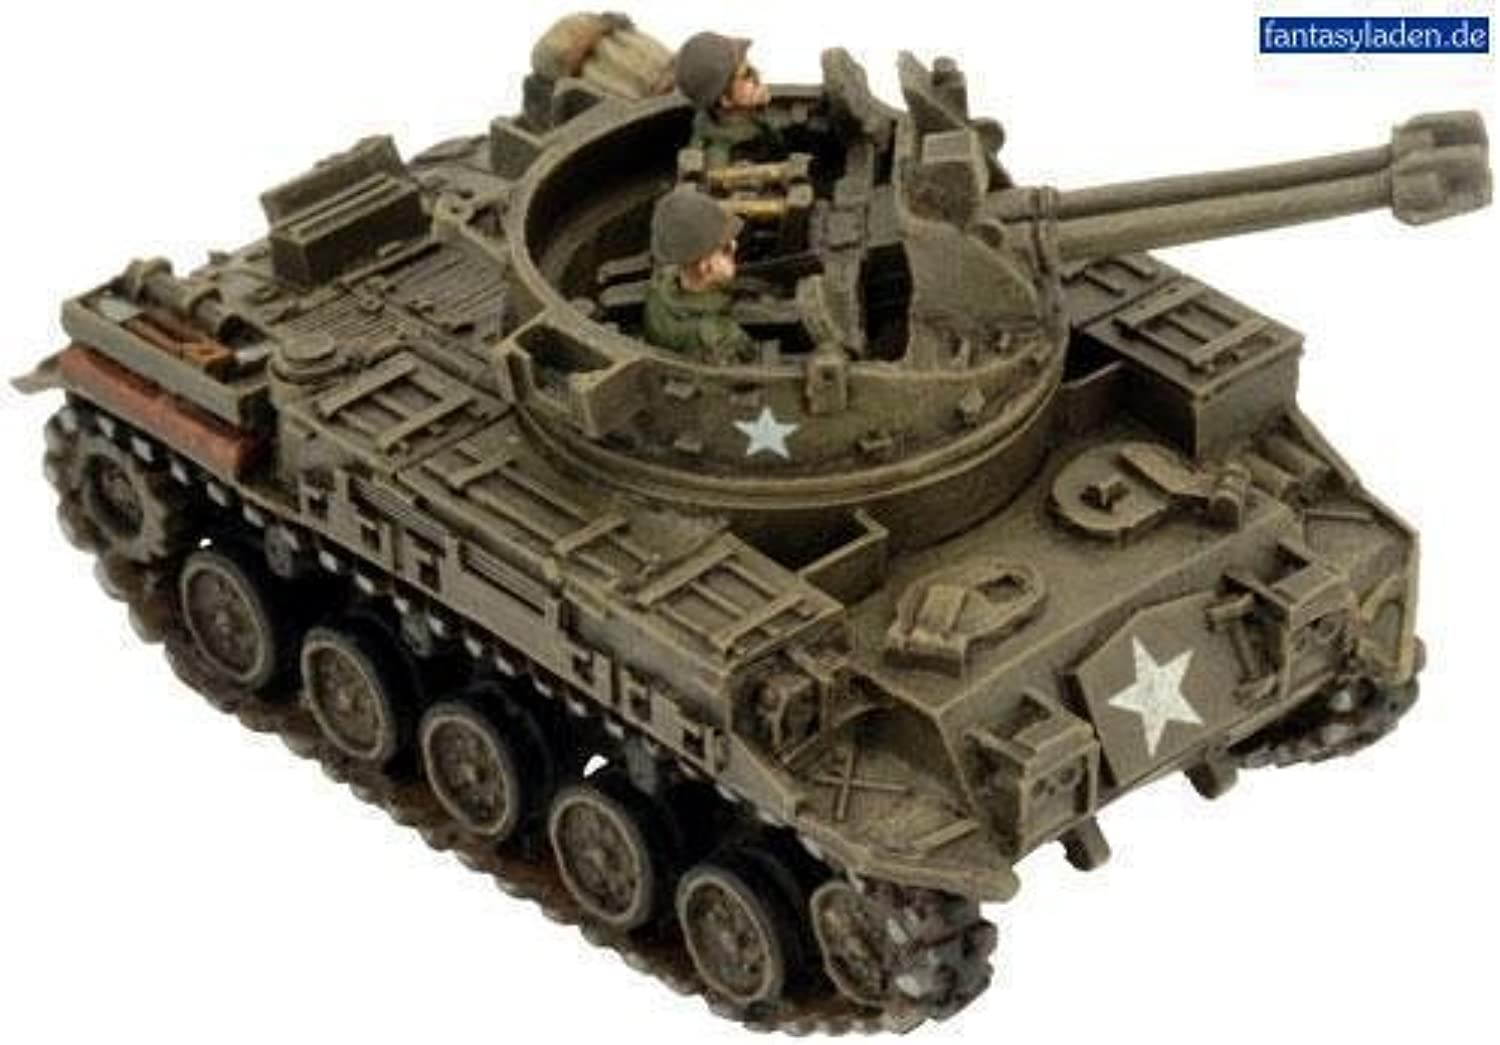 Vietnam  M42A1 Duster by Battlefront Miniatures